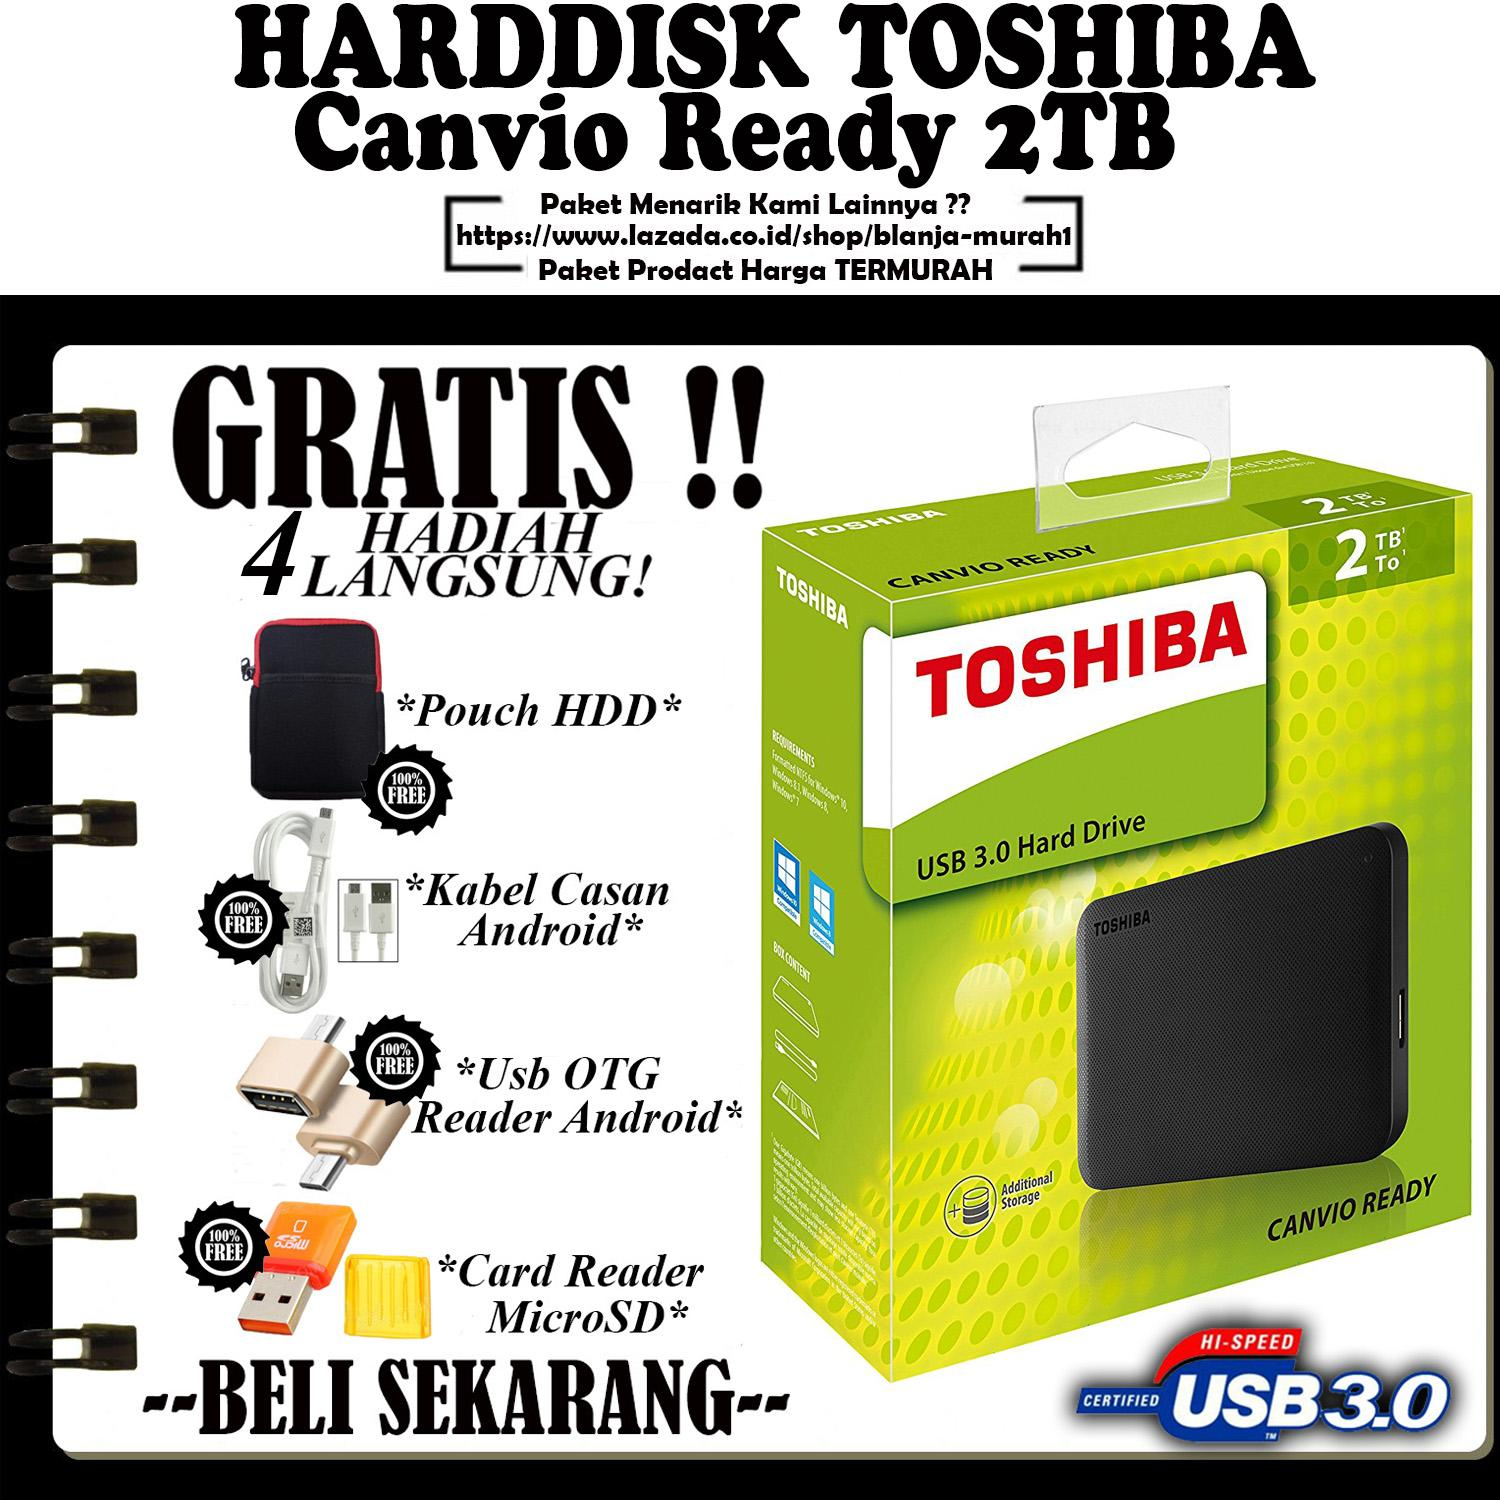 Toshiba Canvio Ready 2TB - Black - GRATIS GRATIS Pouch Harddisk + Kabel Charger Casan Android + Usb